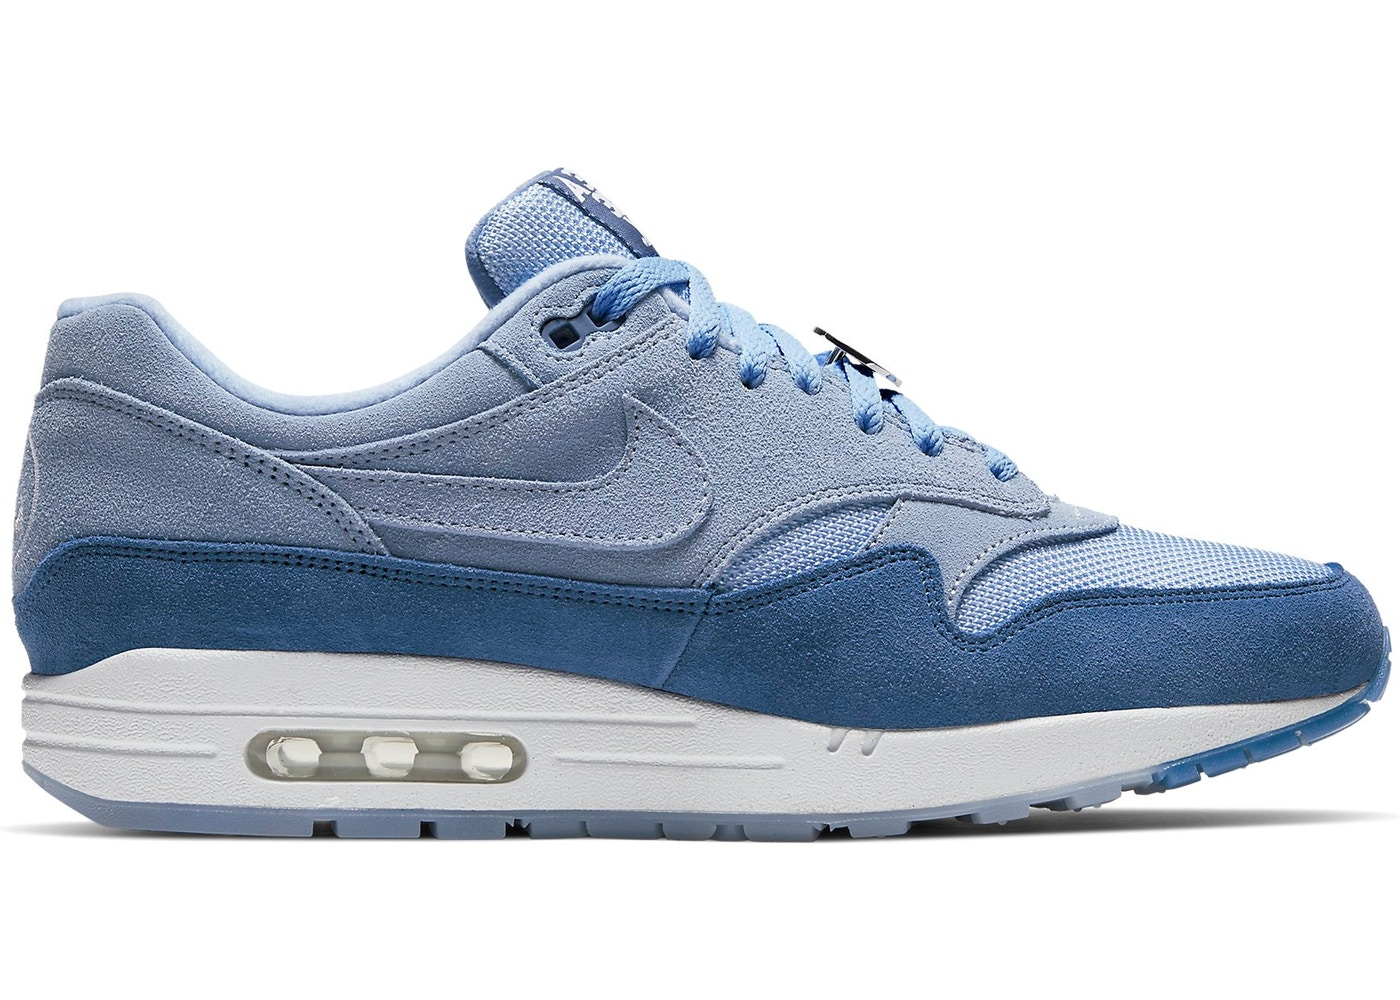 on sale 07134 d0a01 Air Max 1 Have a Nike Day Indigo Storm - BQ8929-400